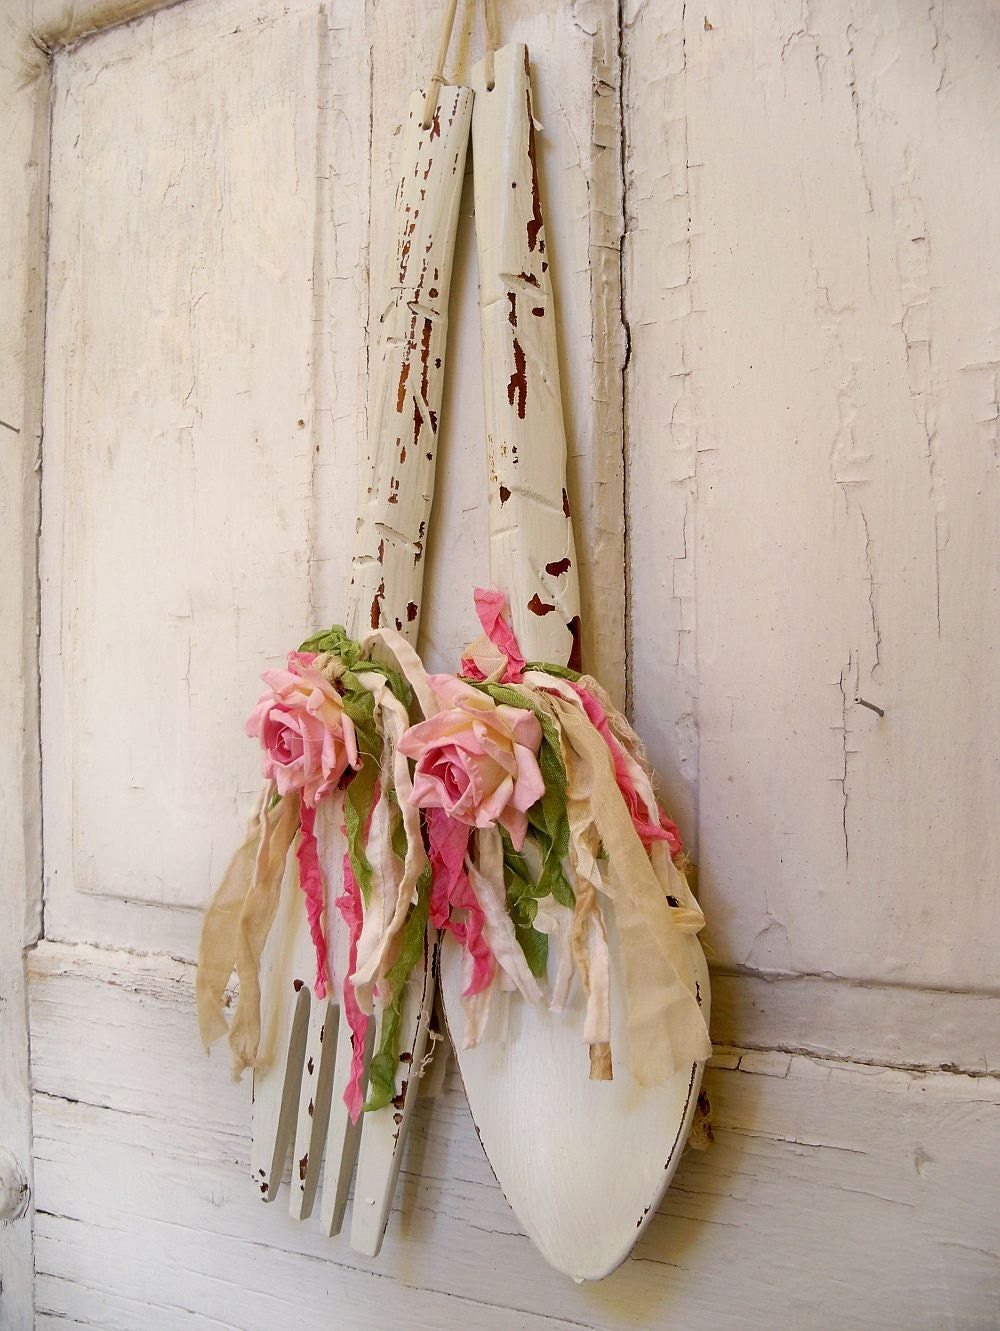 Vintage Shabby Chic Spoon Fork Wall Decor Large Kitchen